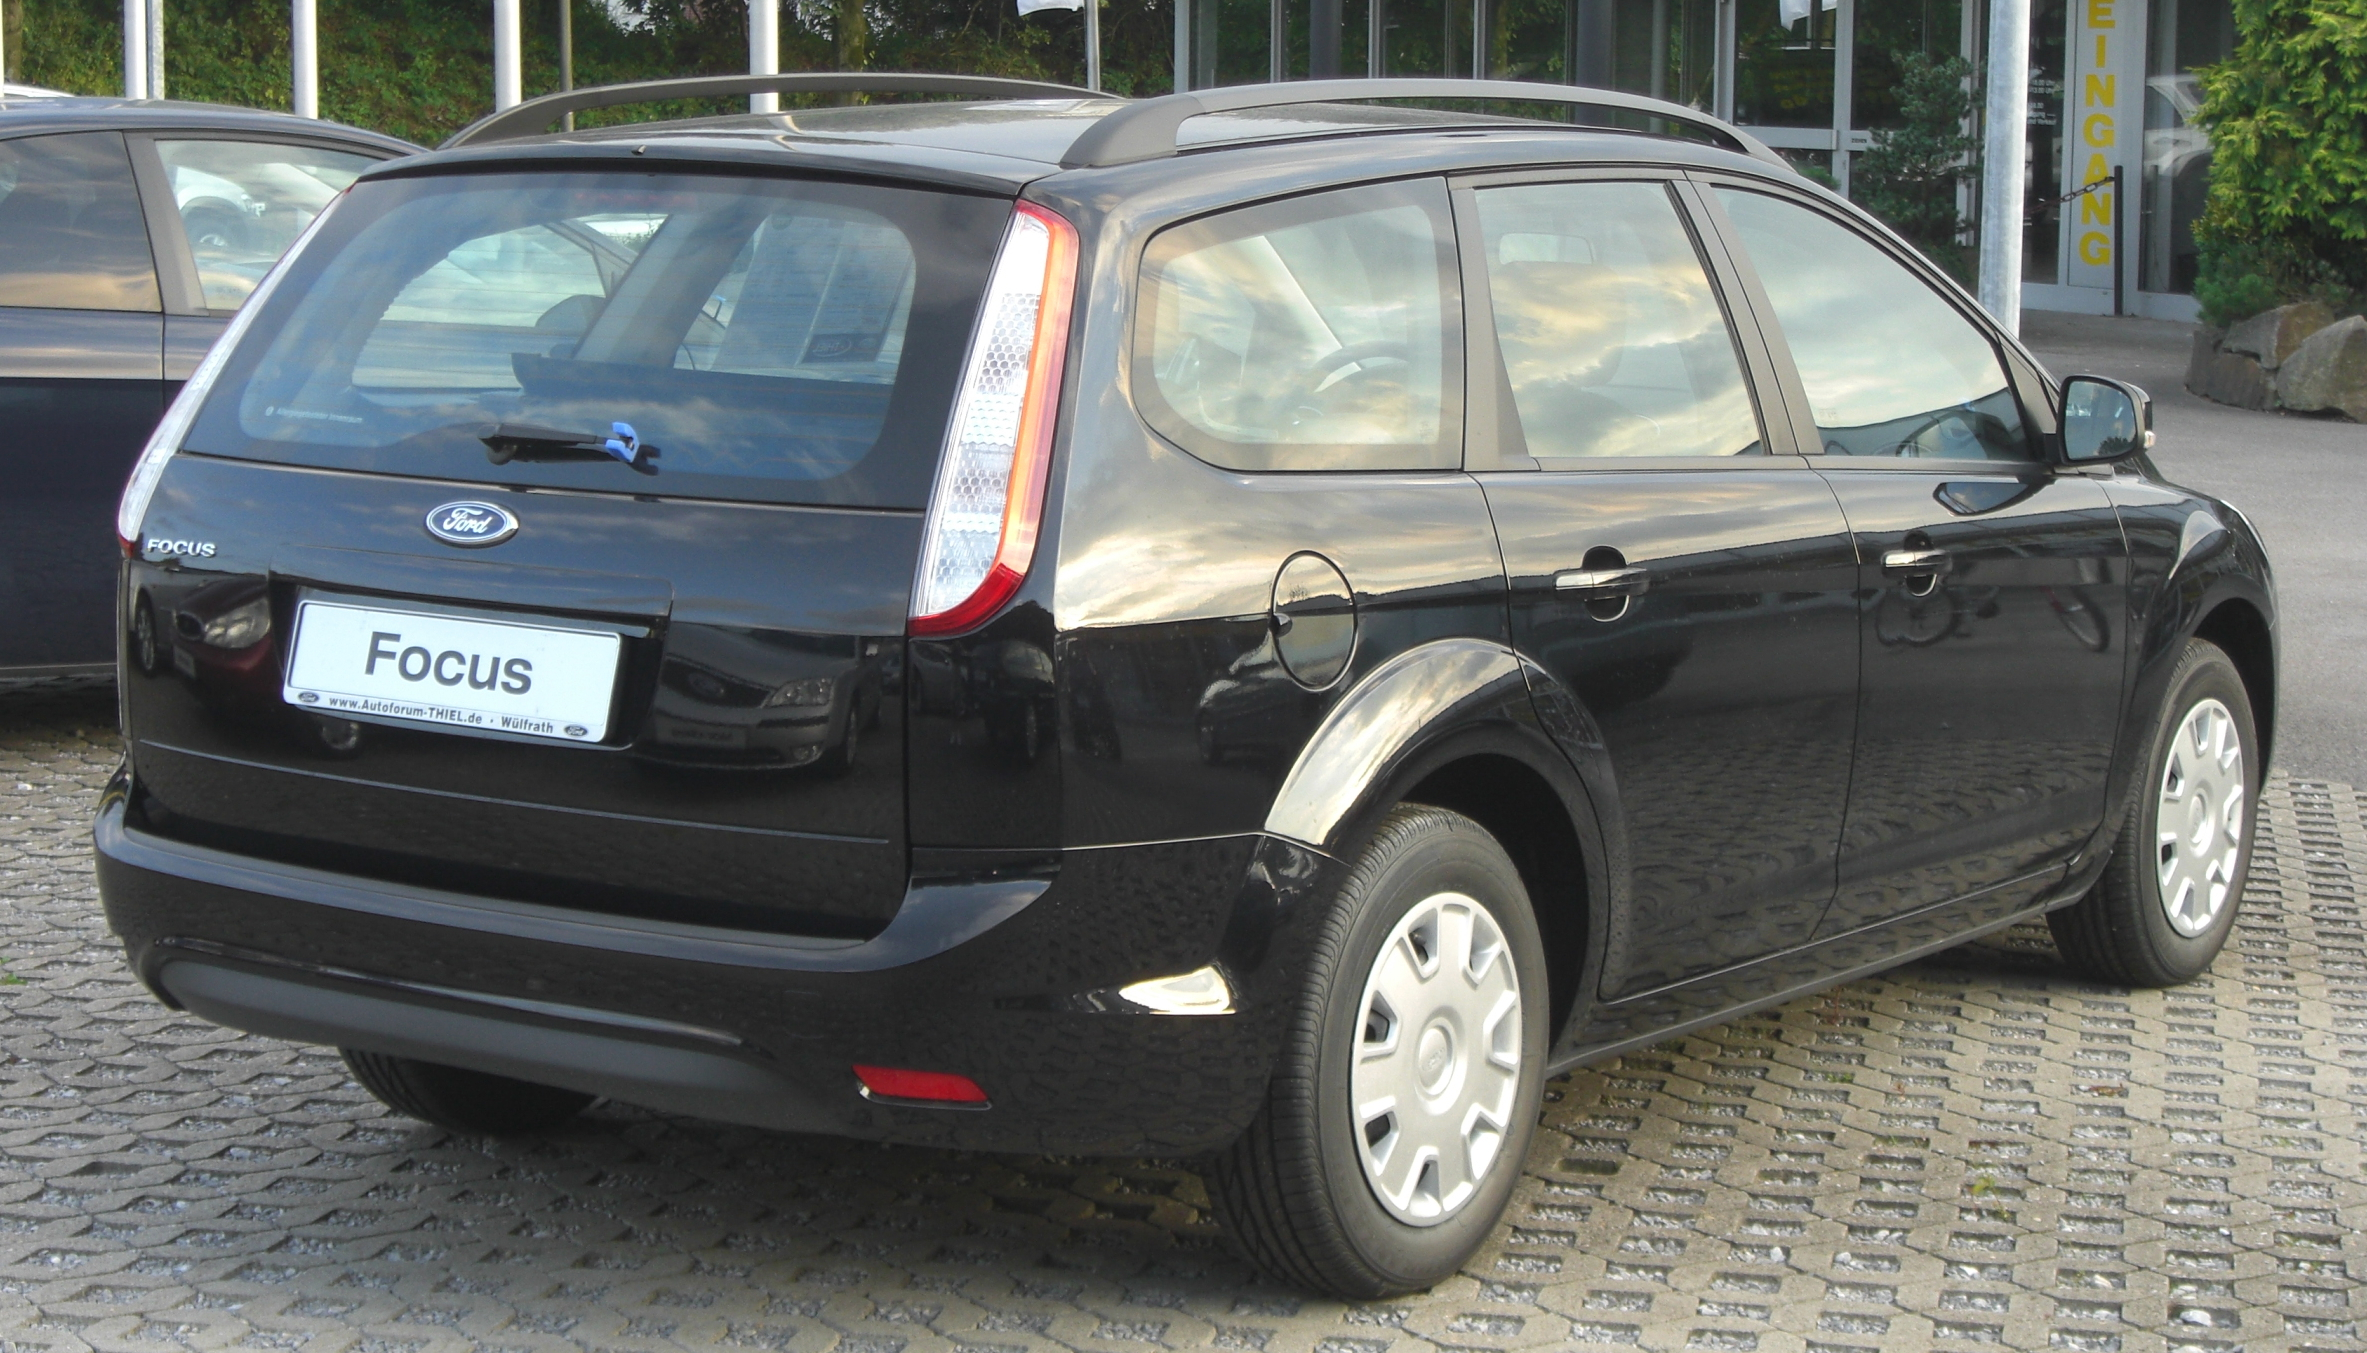 file ford focus turnier facelift rear jpg wikimedia commons. Black Bedroom Furniture Sets. Home Design Ideas